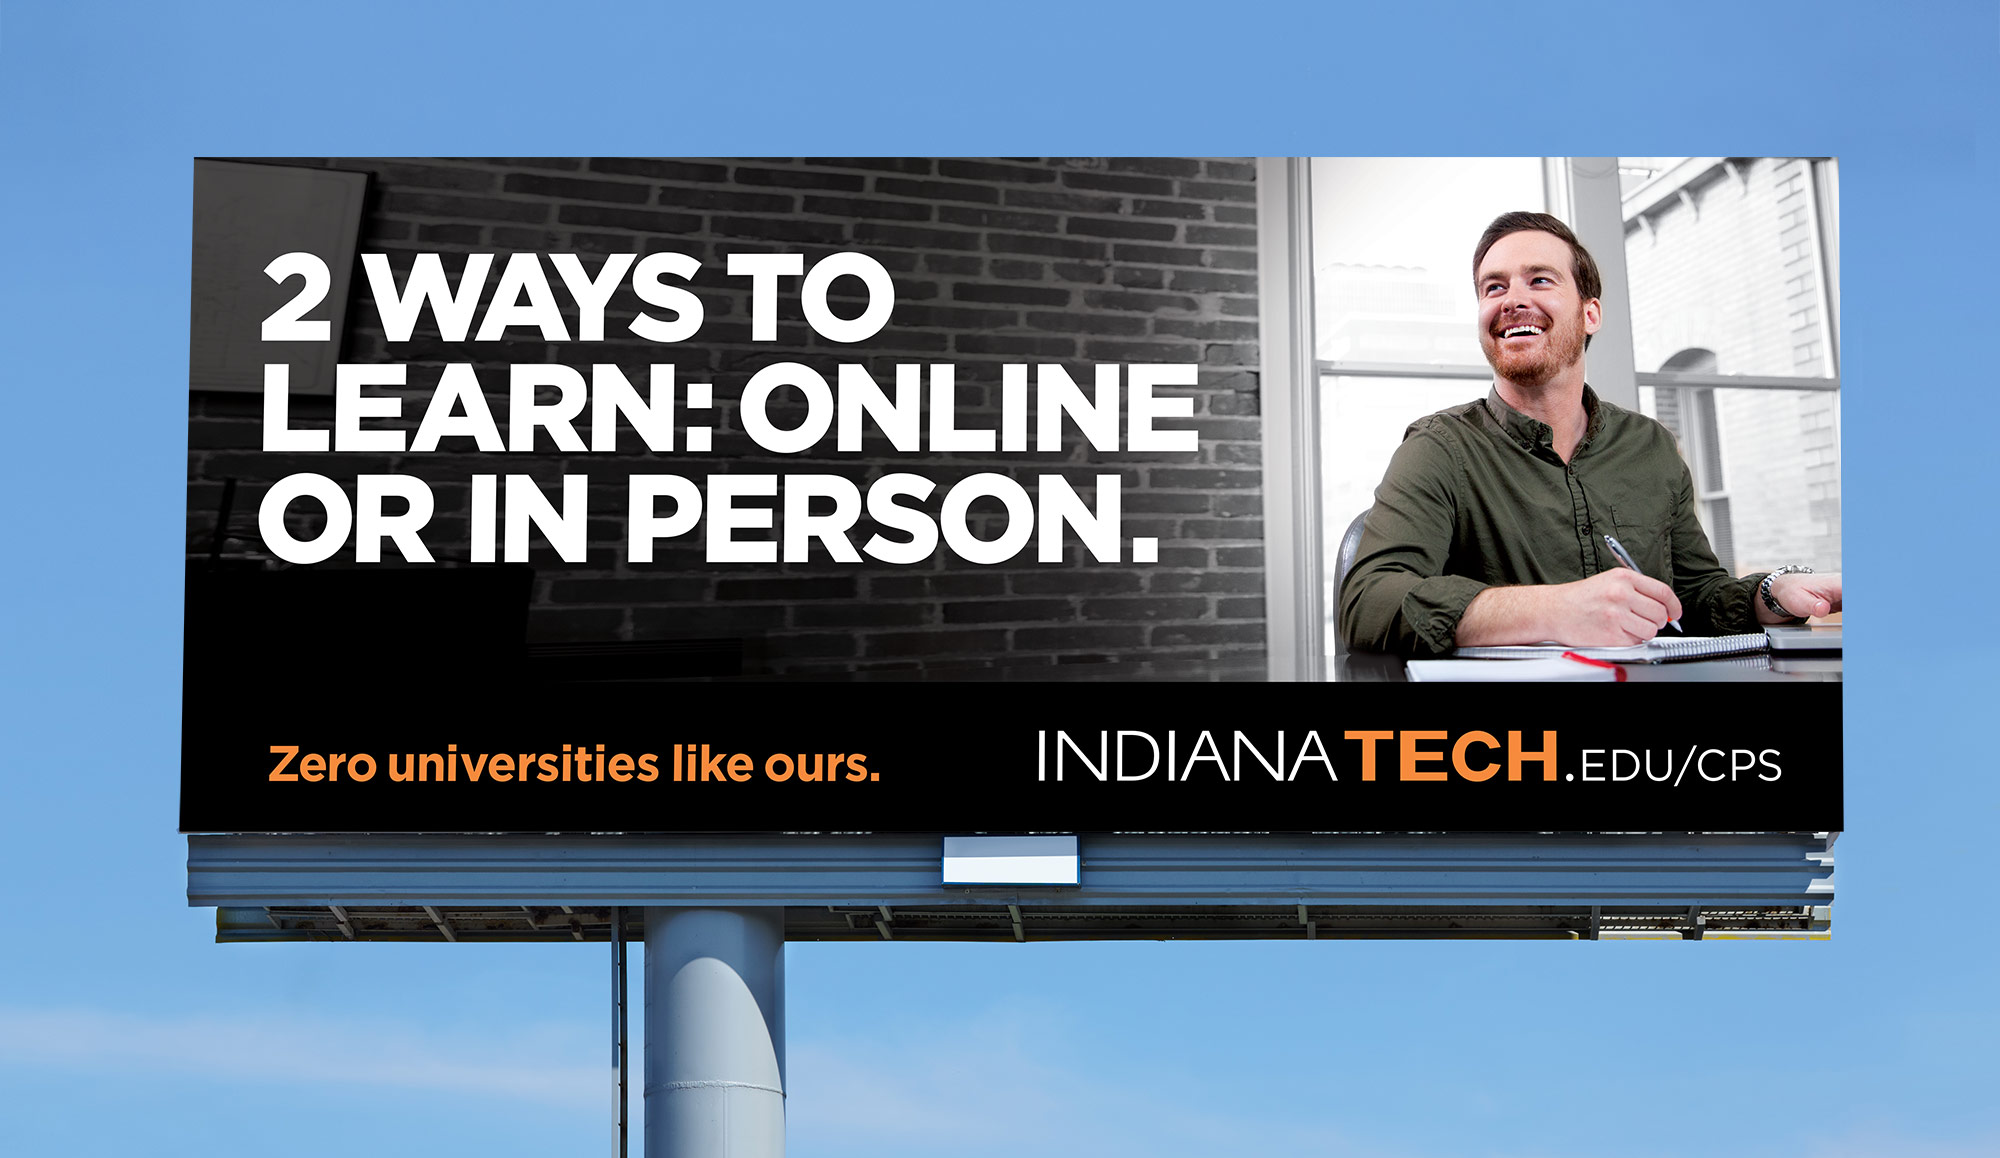 Indiana Tech: Zero Universities Like Ours outdoor